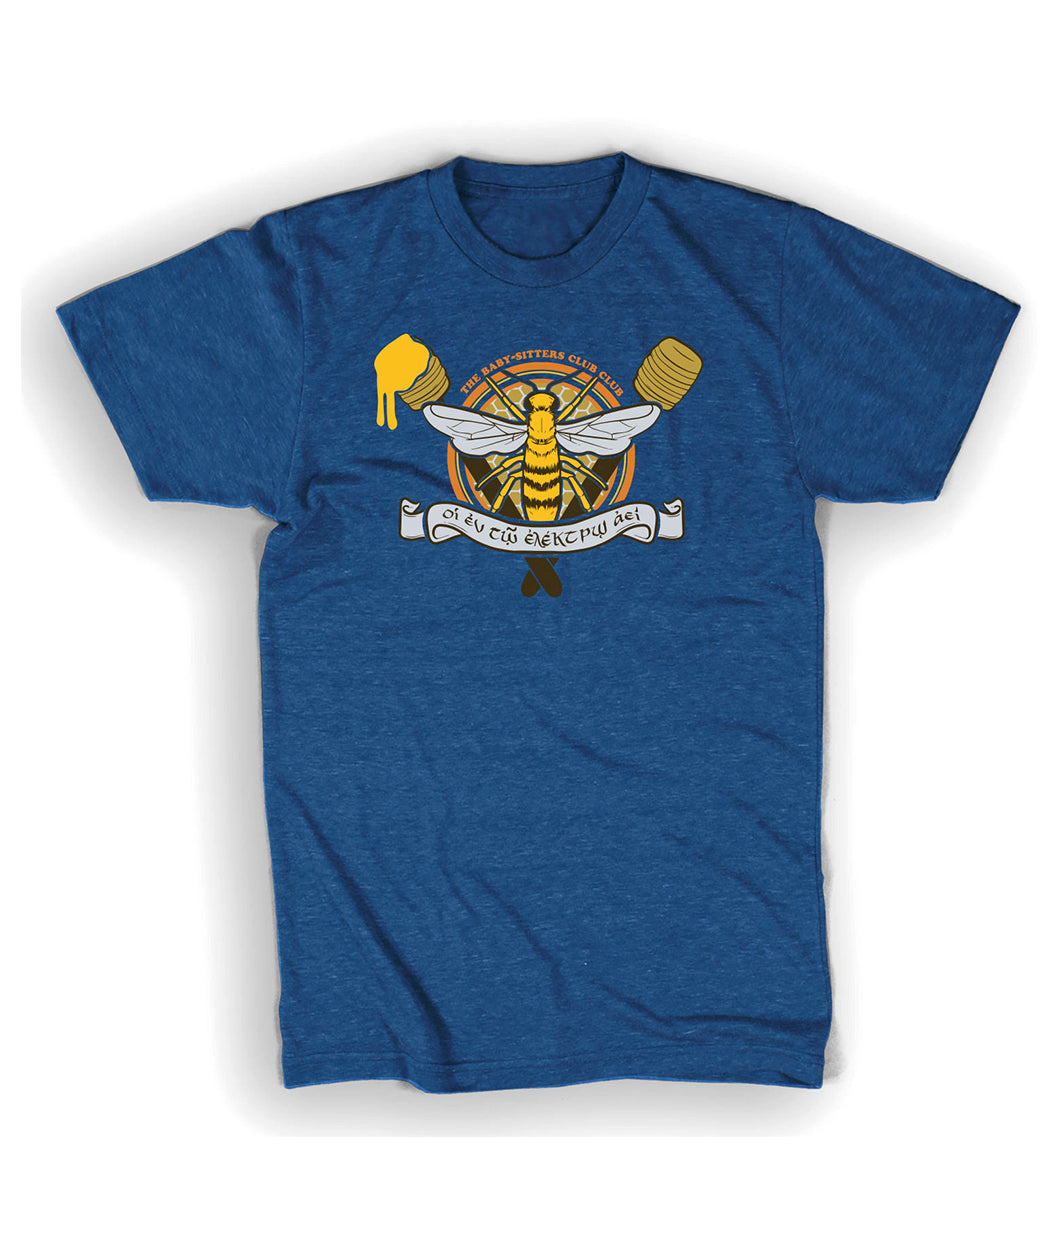 The BSCC Bee Shirt